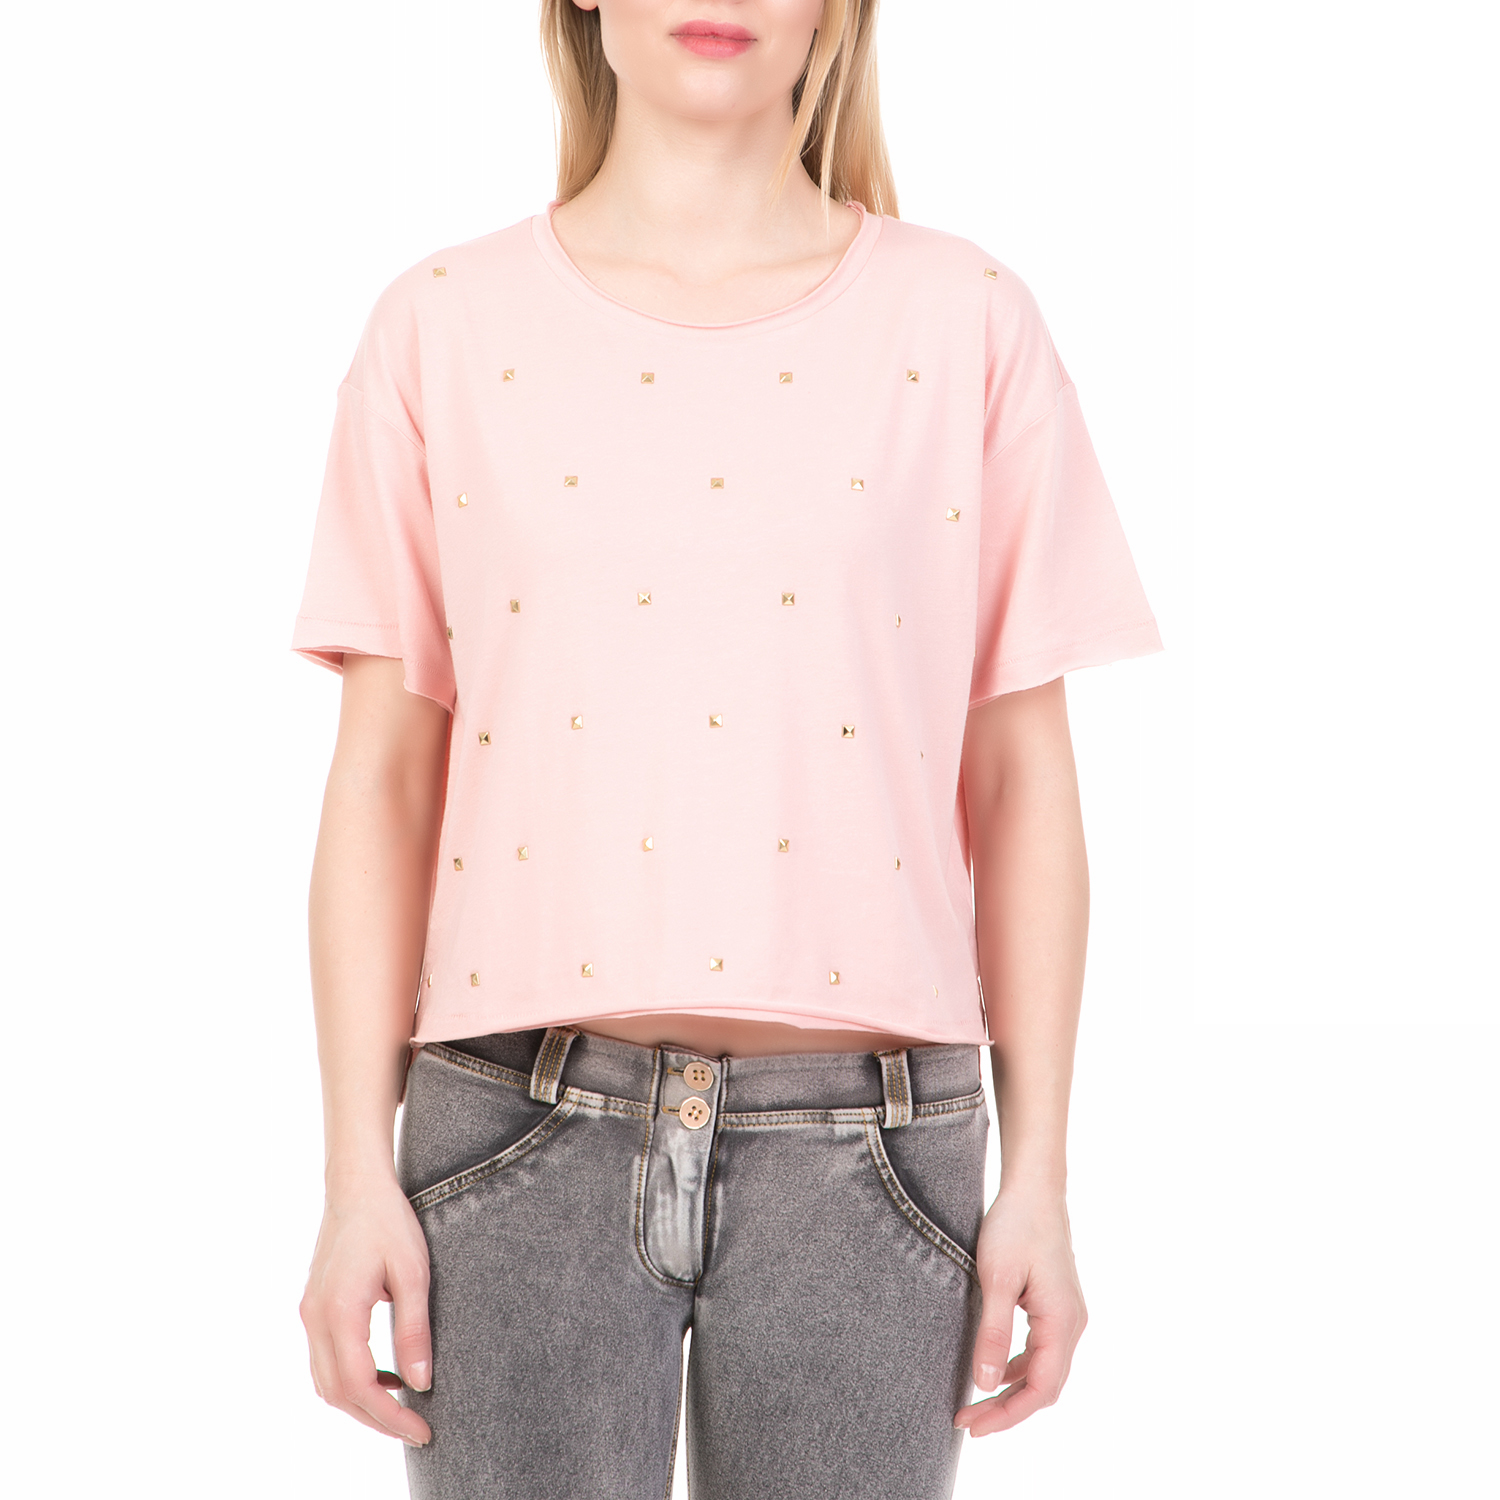 JUICY COUTURE - Γυναικεία κοντομάνικη μπλούζα WASHED JERSEY STUDDED JUICY COUTUR γυναικεία ρούχα μπλούζες κοντομάνικες